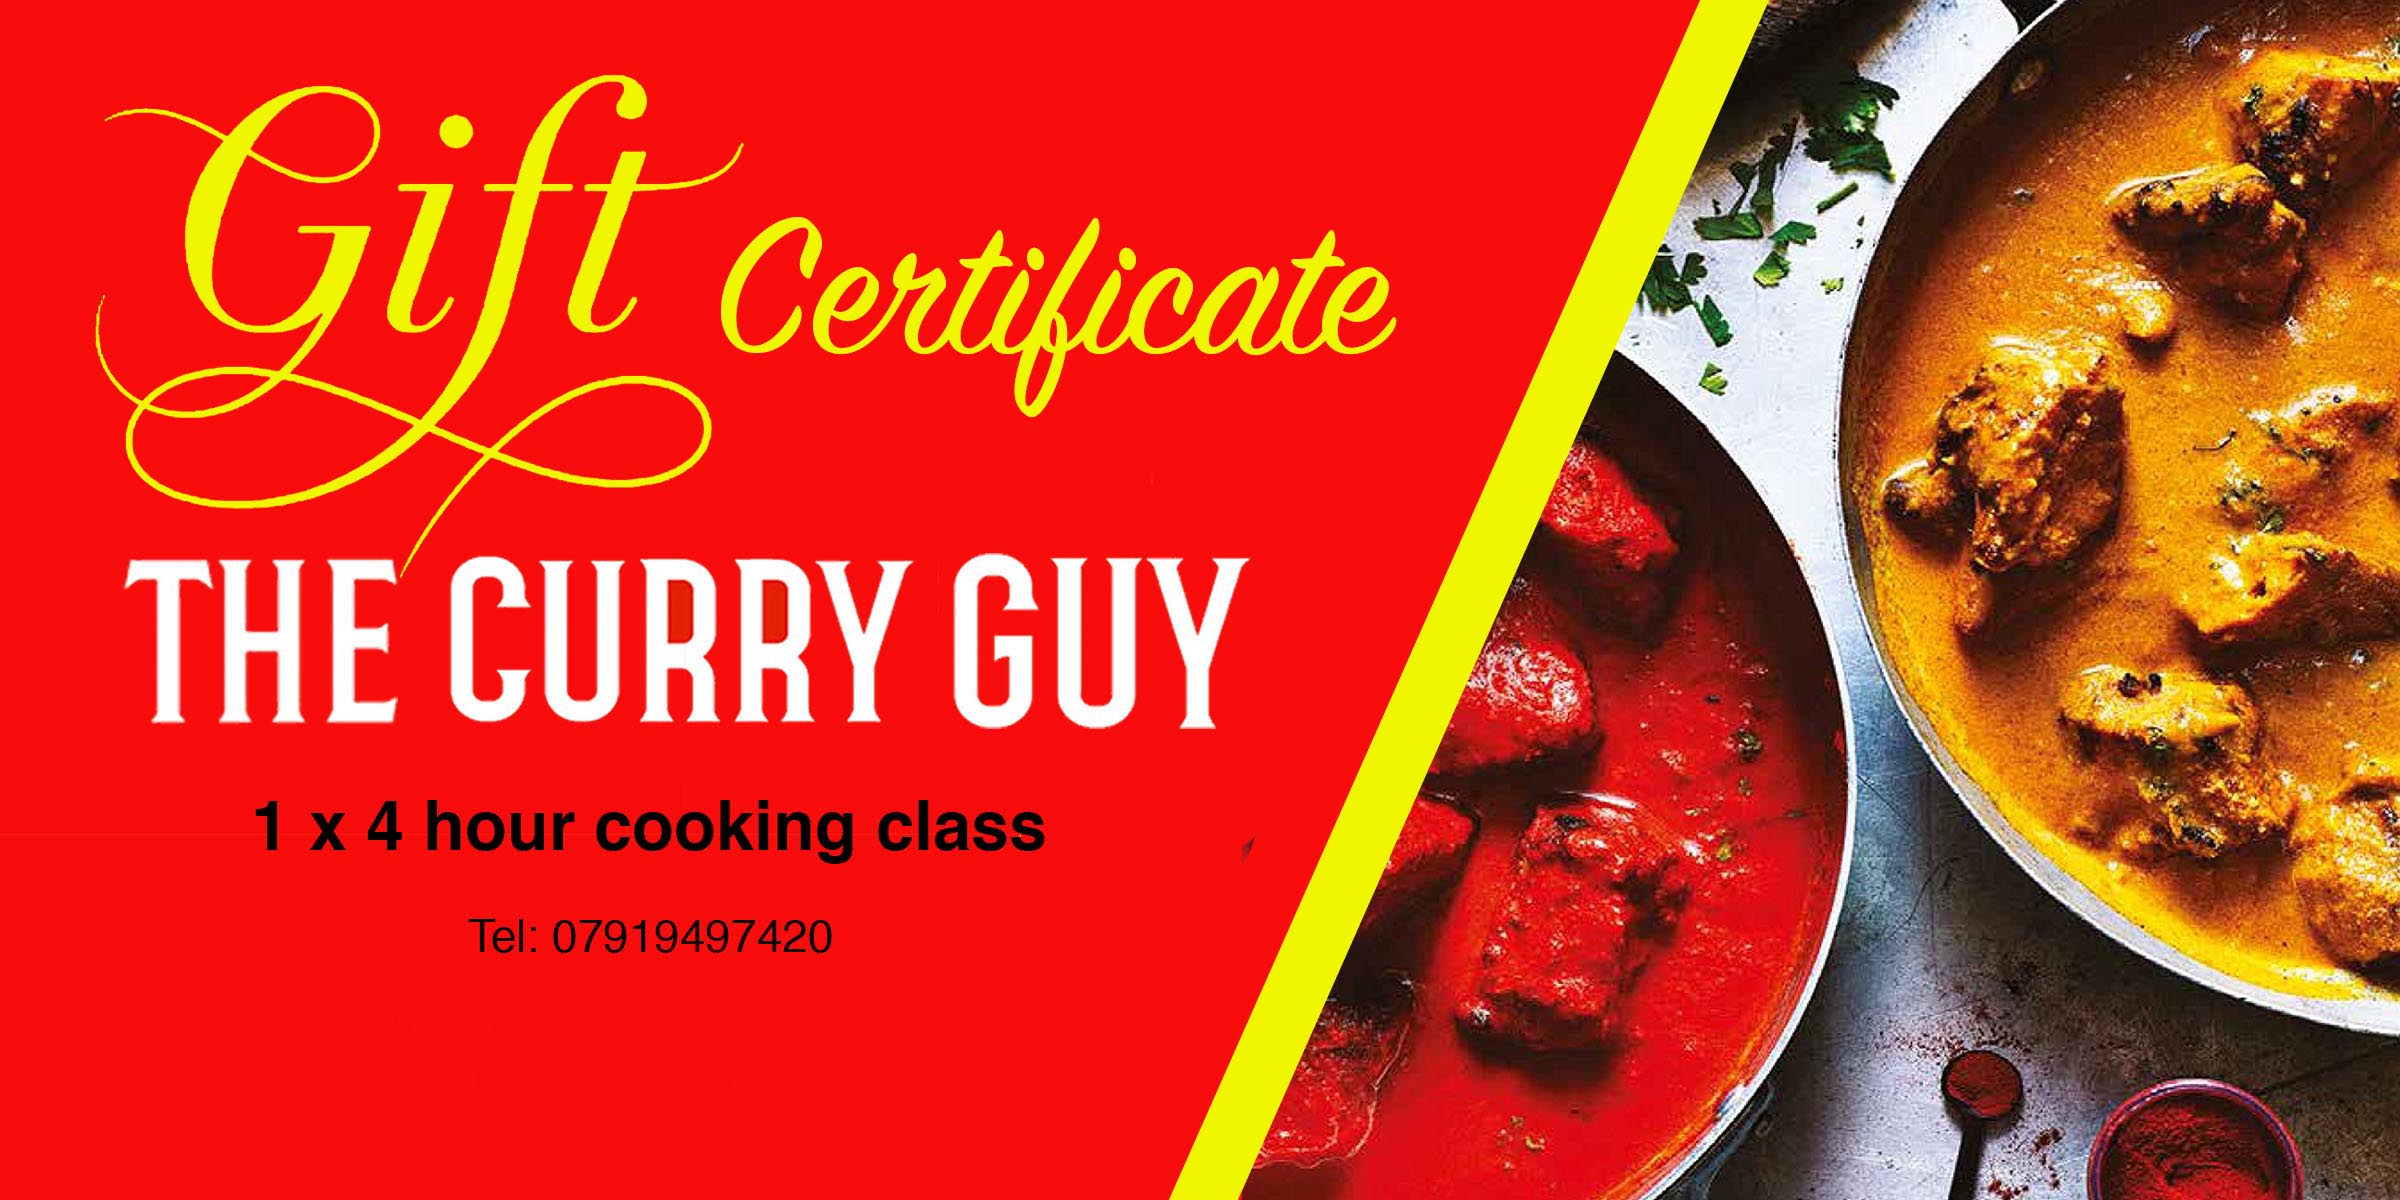 Curry Class Gift Certificate